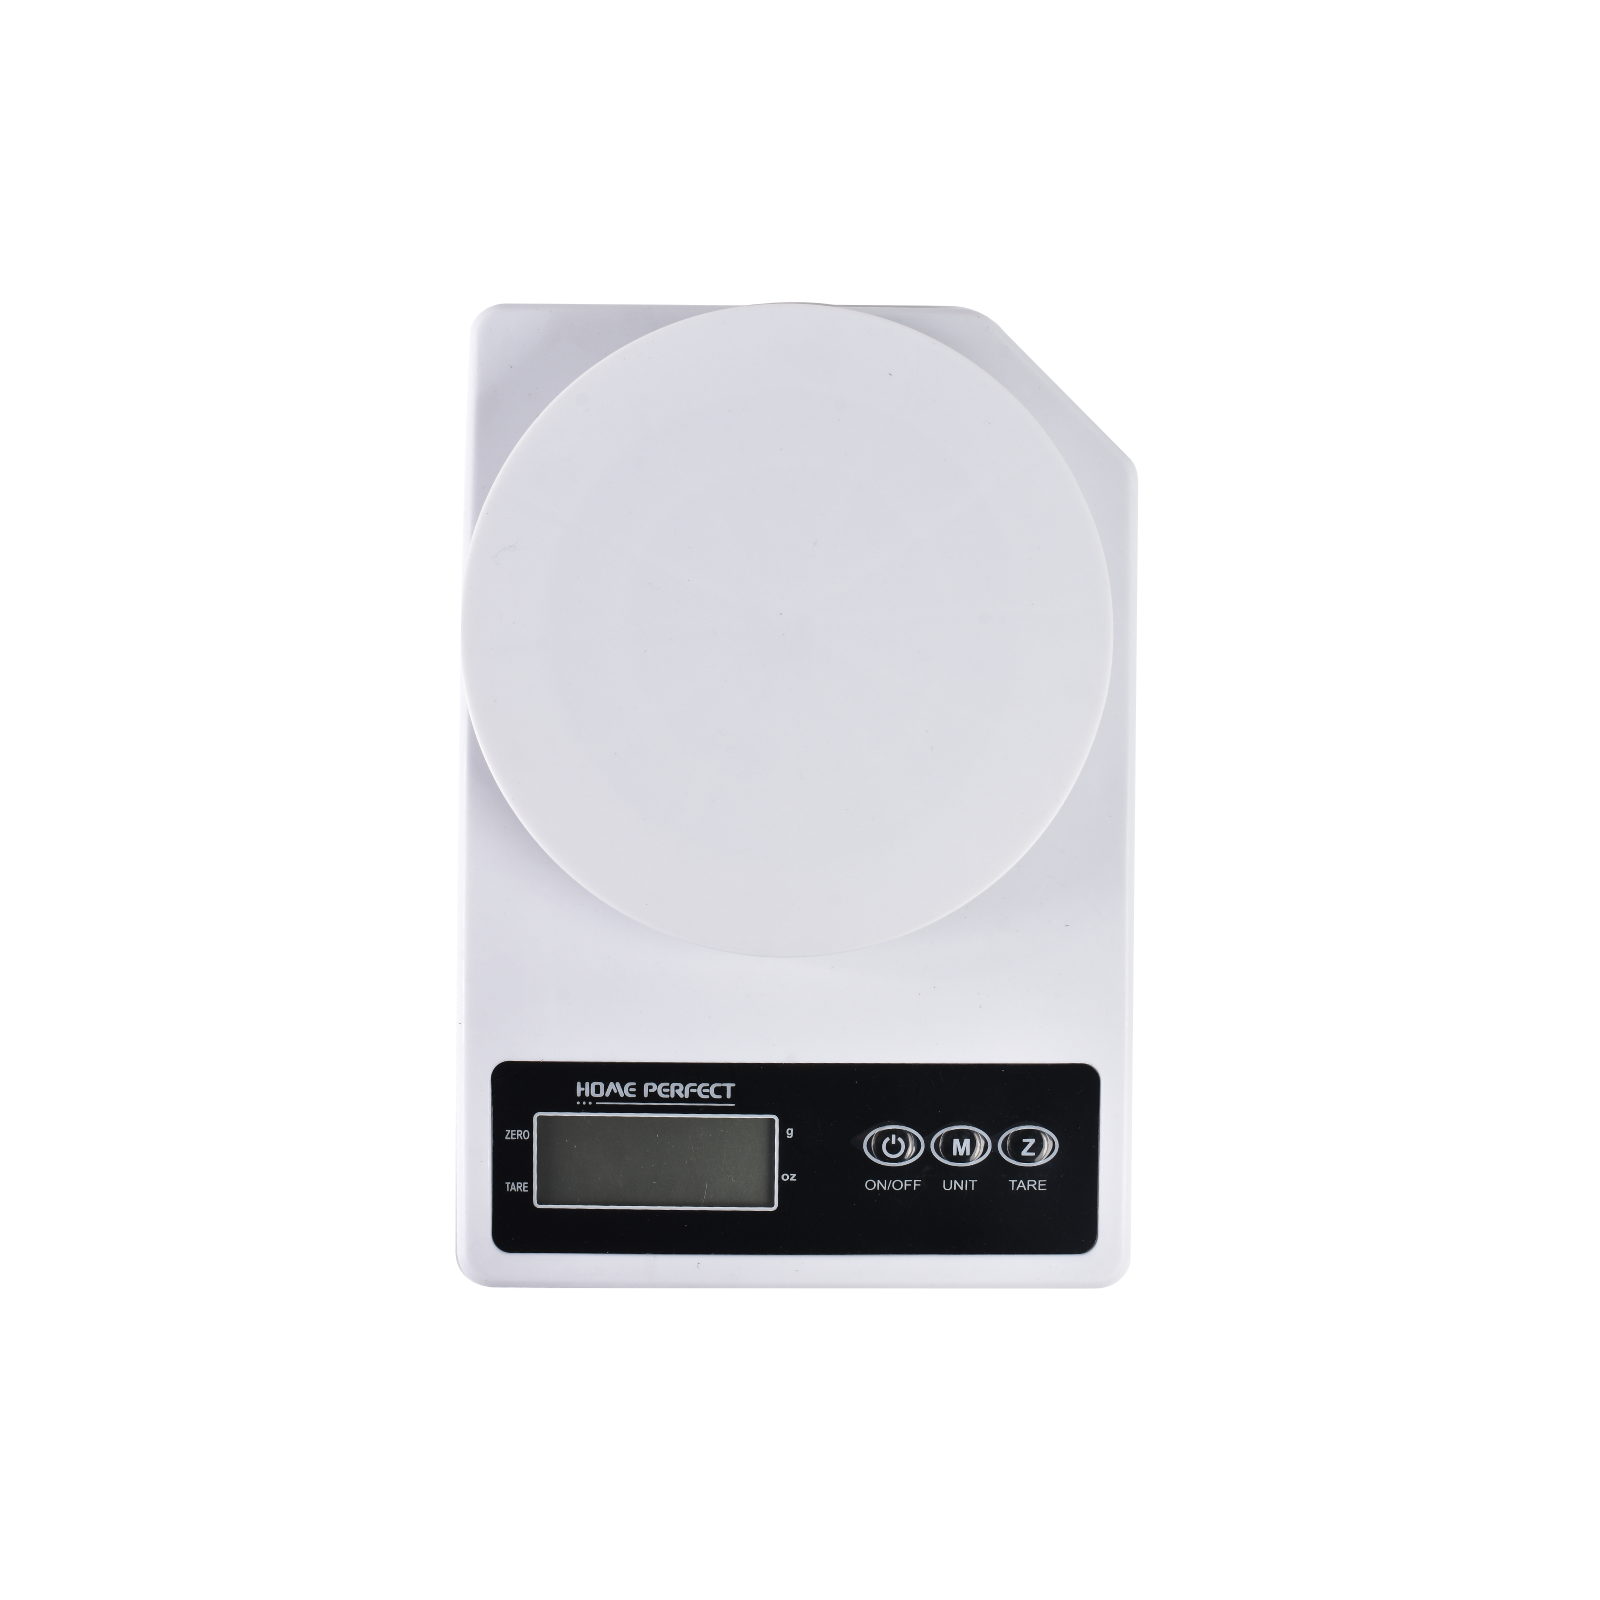 home perfect digital kitchen scale EJ-DSO2.png